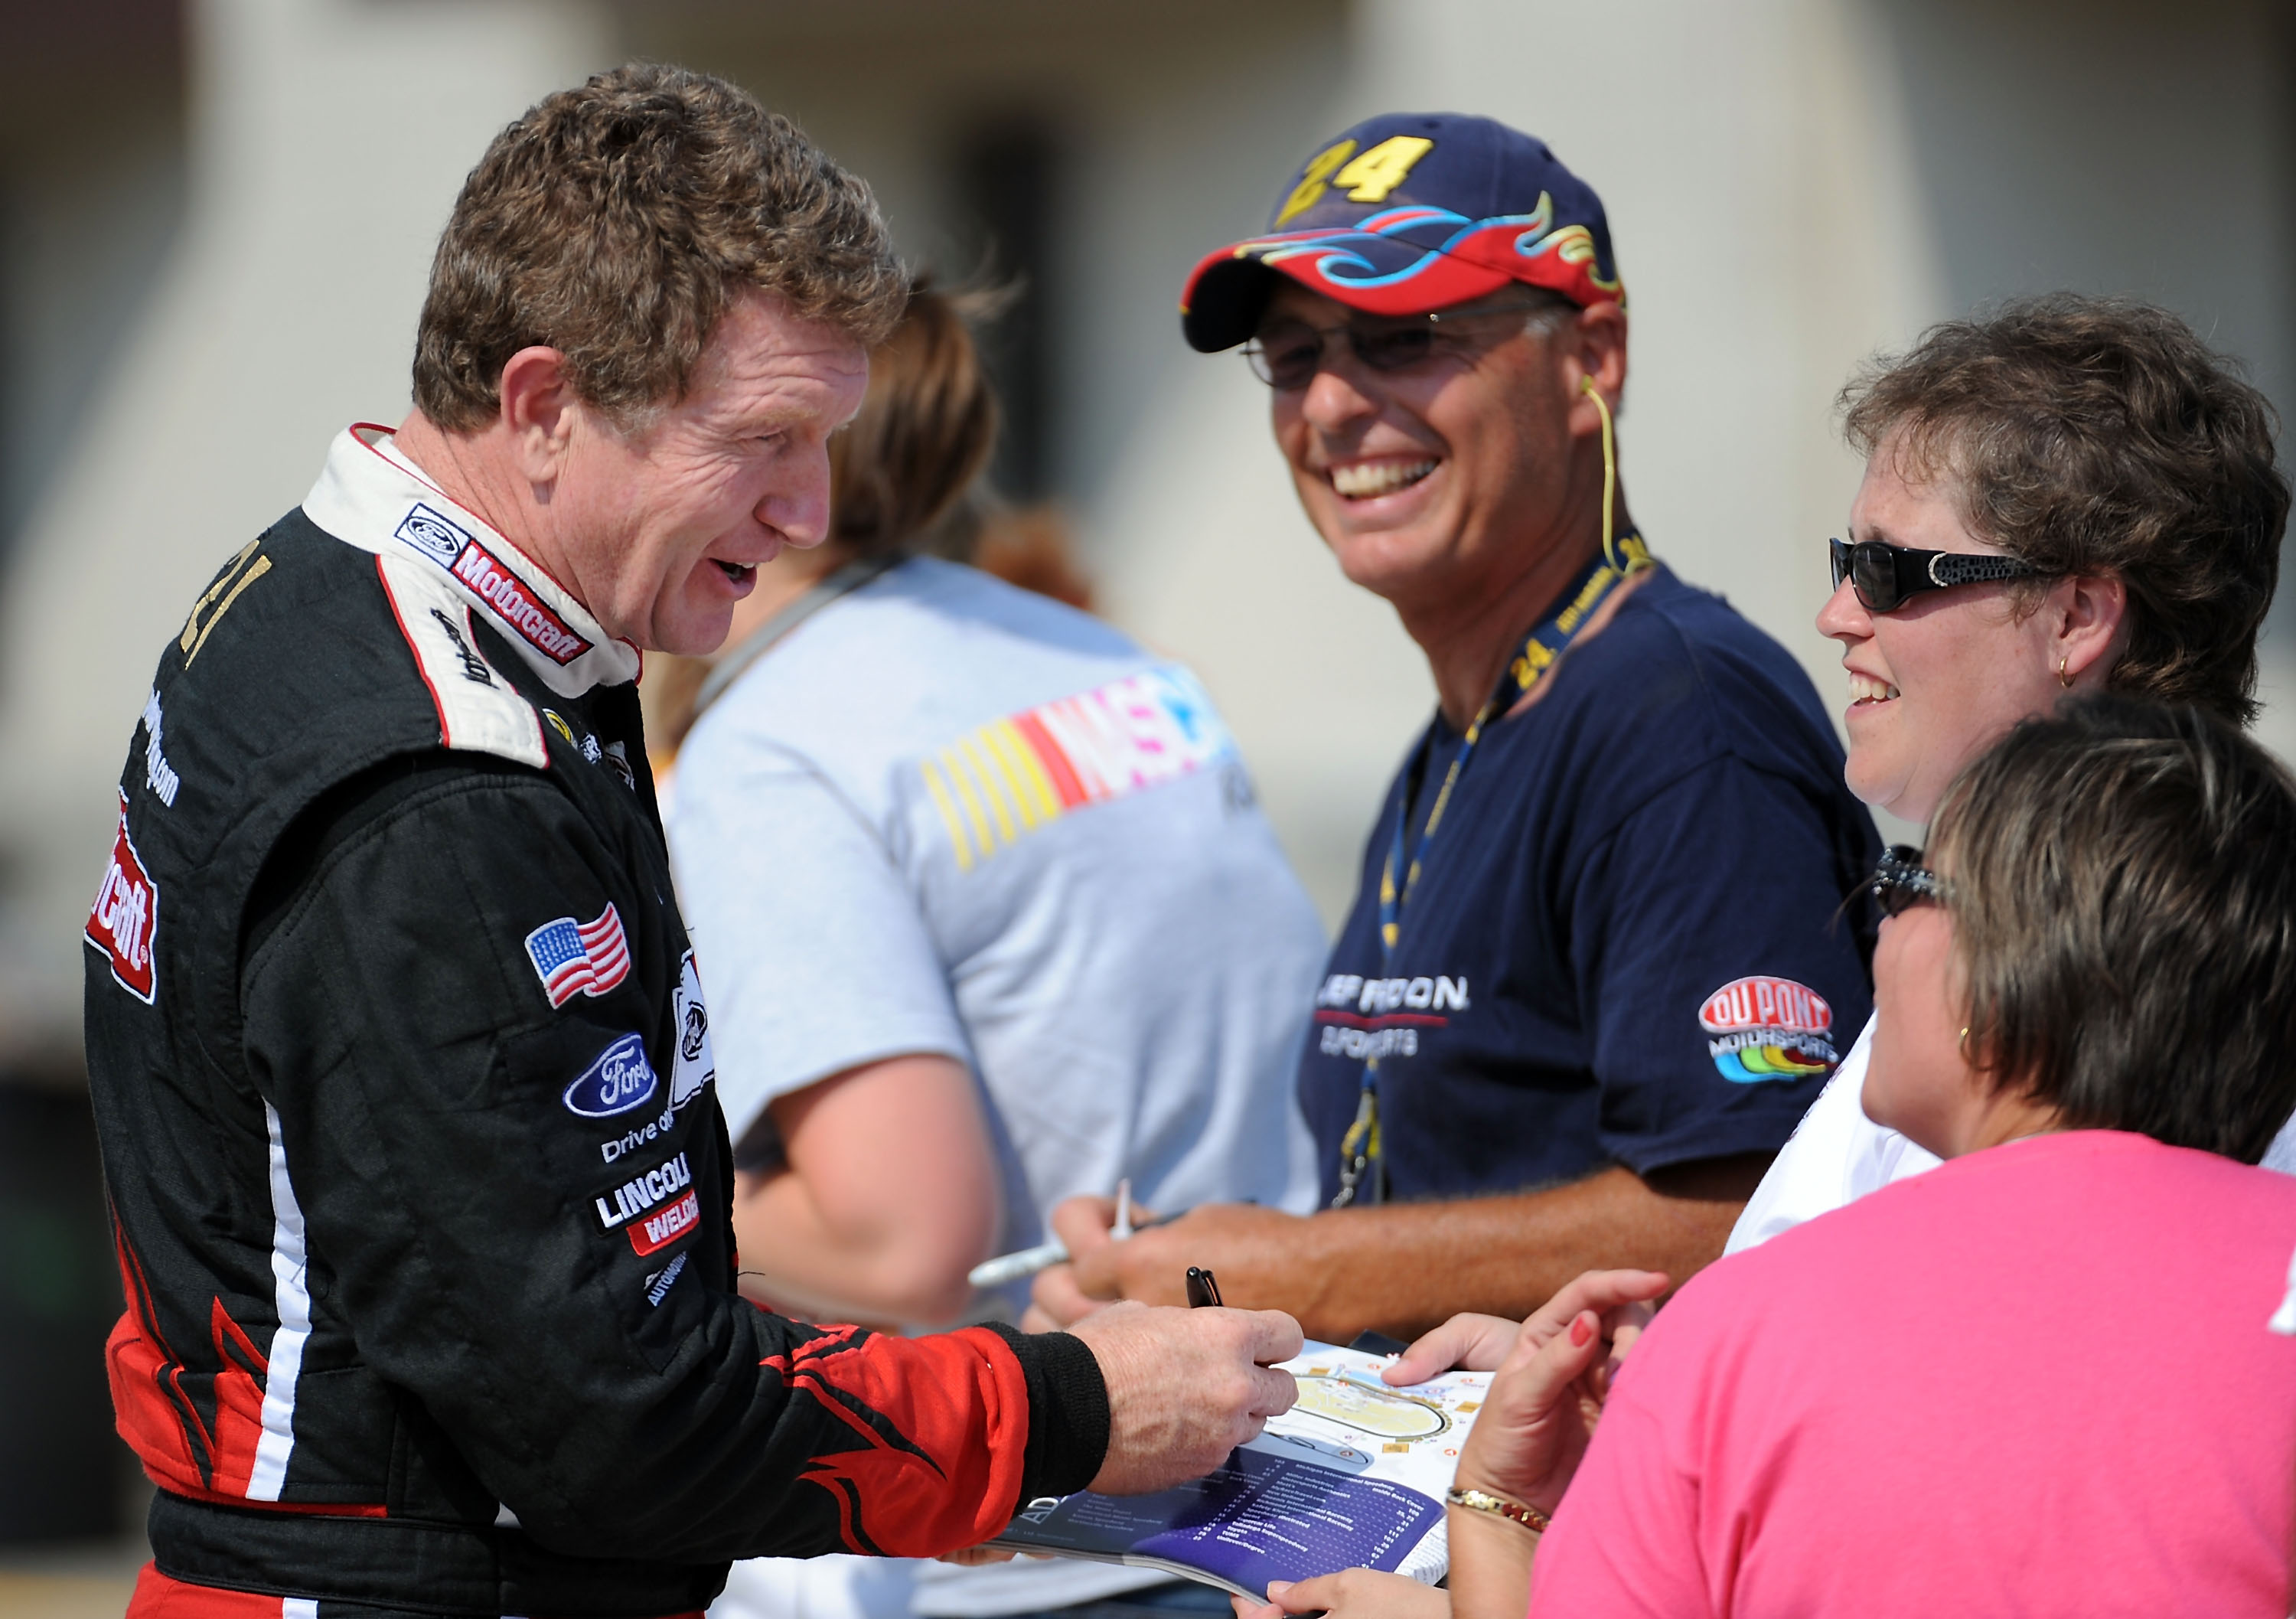 BROOKLYN, MI - AUGUST 14:  Bill Elliott, driver of the #21 Motorcraft Ford, signs autographs during practice for the NASCAR Sprint Cup Series Michigan 400 at Michigan Internetional Speedway on August 14, 2009 in Brooklyn, Michigan.  (Photo by Harry How/Ge